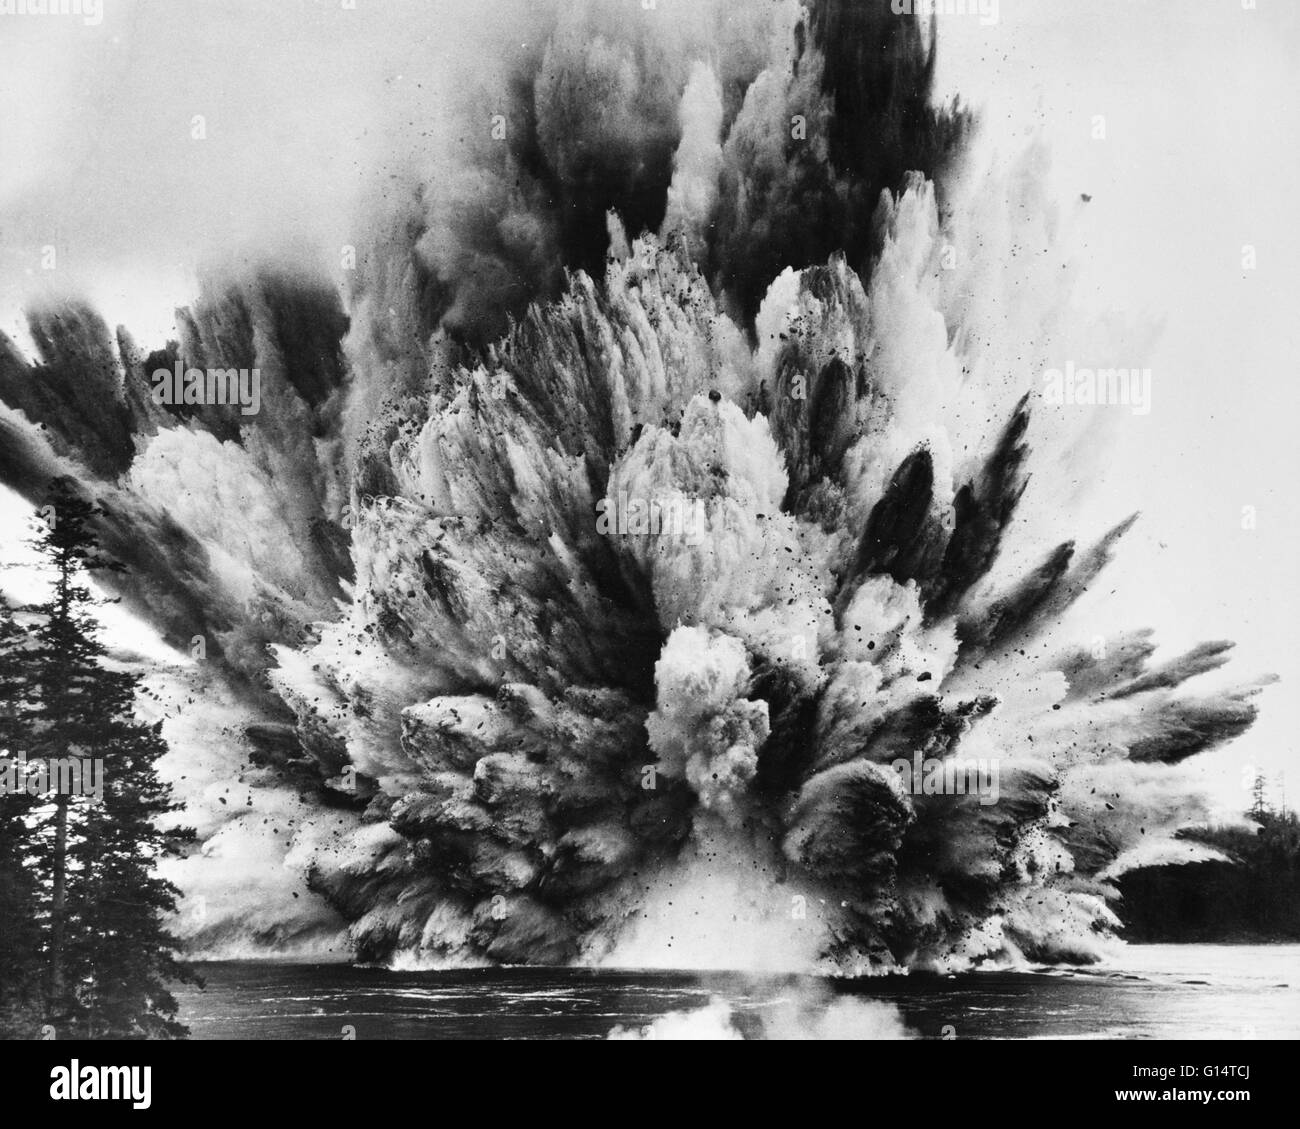 Ripple Rock explosion in Seymour Narrows, British Columbia, April 5th, 1958. The largest non-atomic blast set off Stock Photo